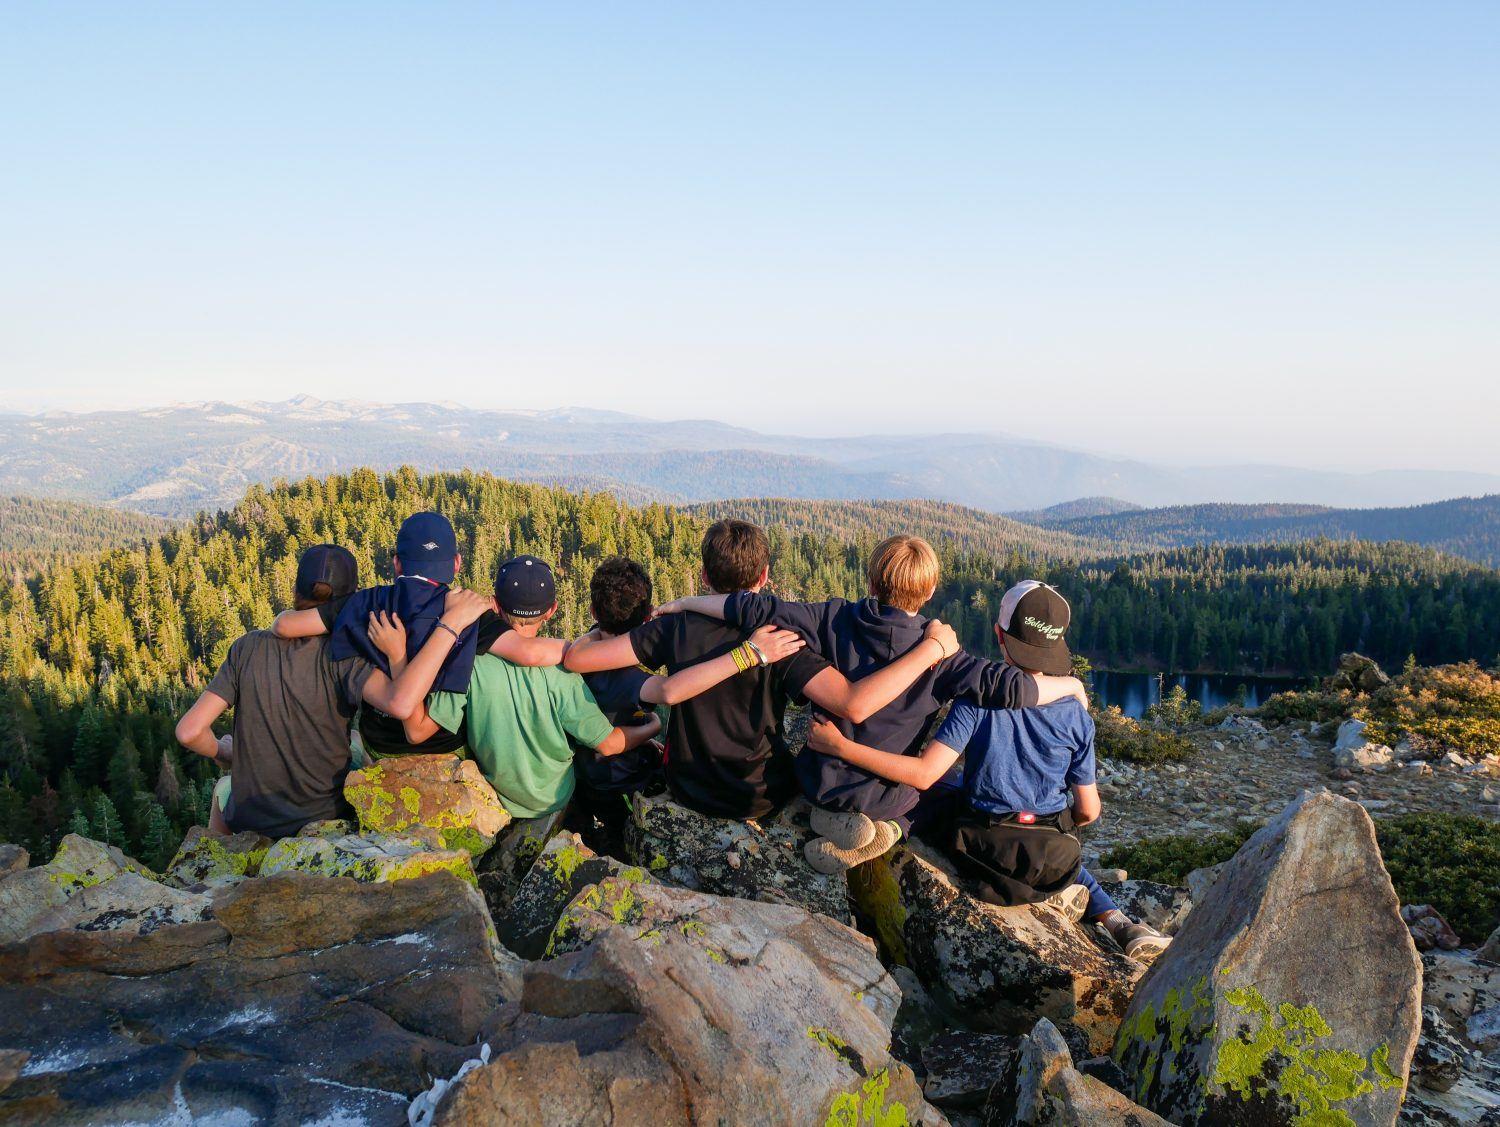 Campers at a summer camp have their arms over each other's shoulders while they look out over the Sierra Nevada and a mountain lake